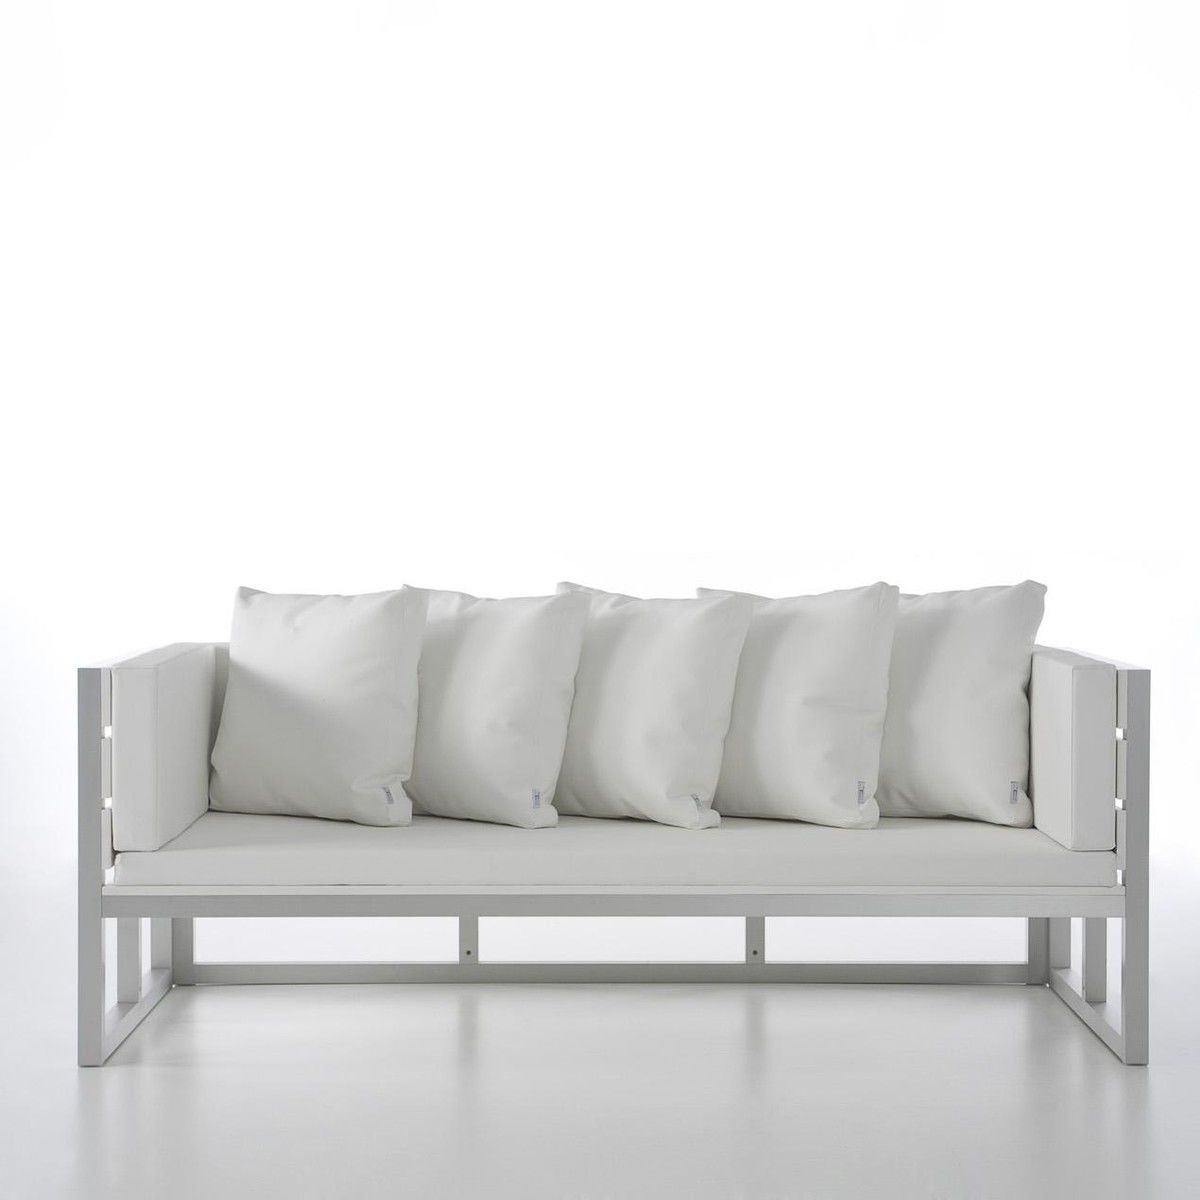 gandia blasco clack chair couch and covers for dogs na xemena sofa ambientedirect